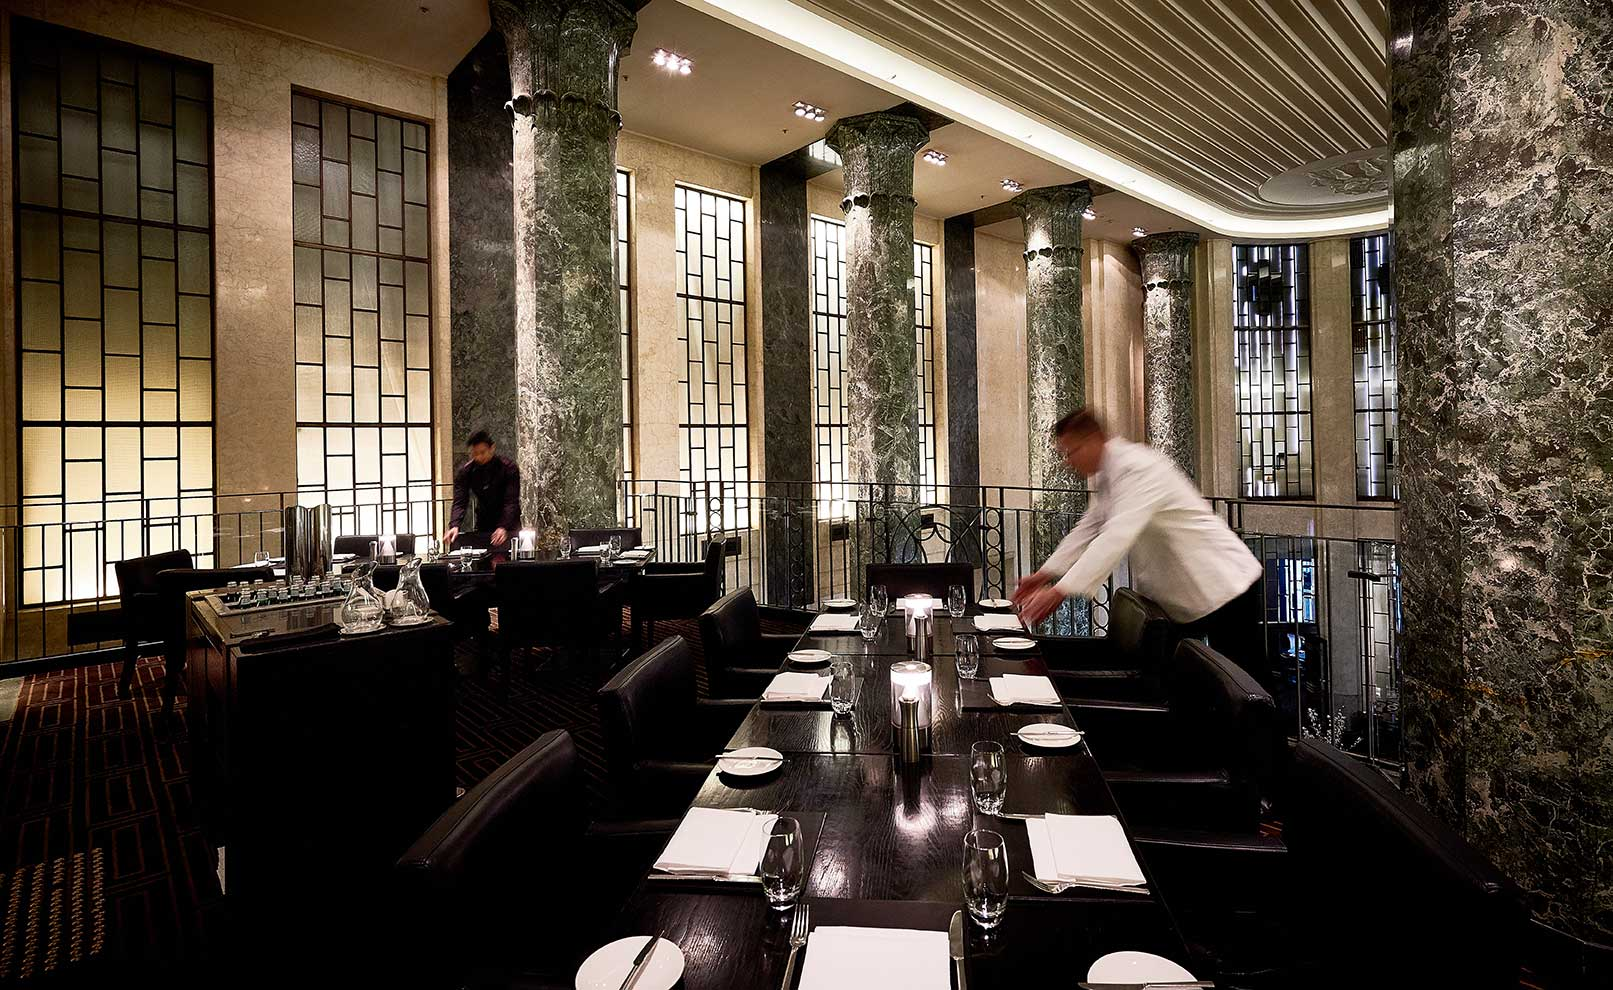 The upstairs balcony dining area.Image courtesy of The Rockpool Dining Group.